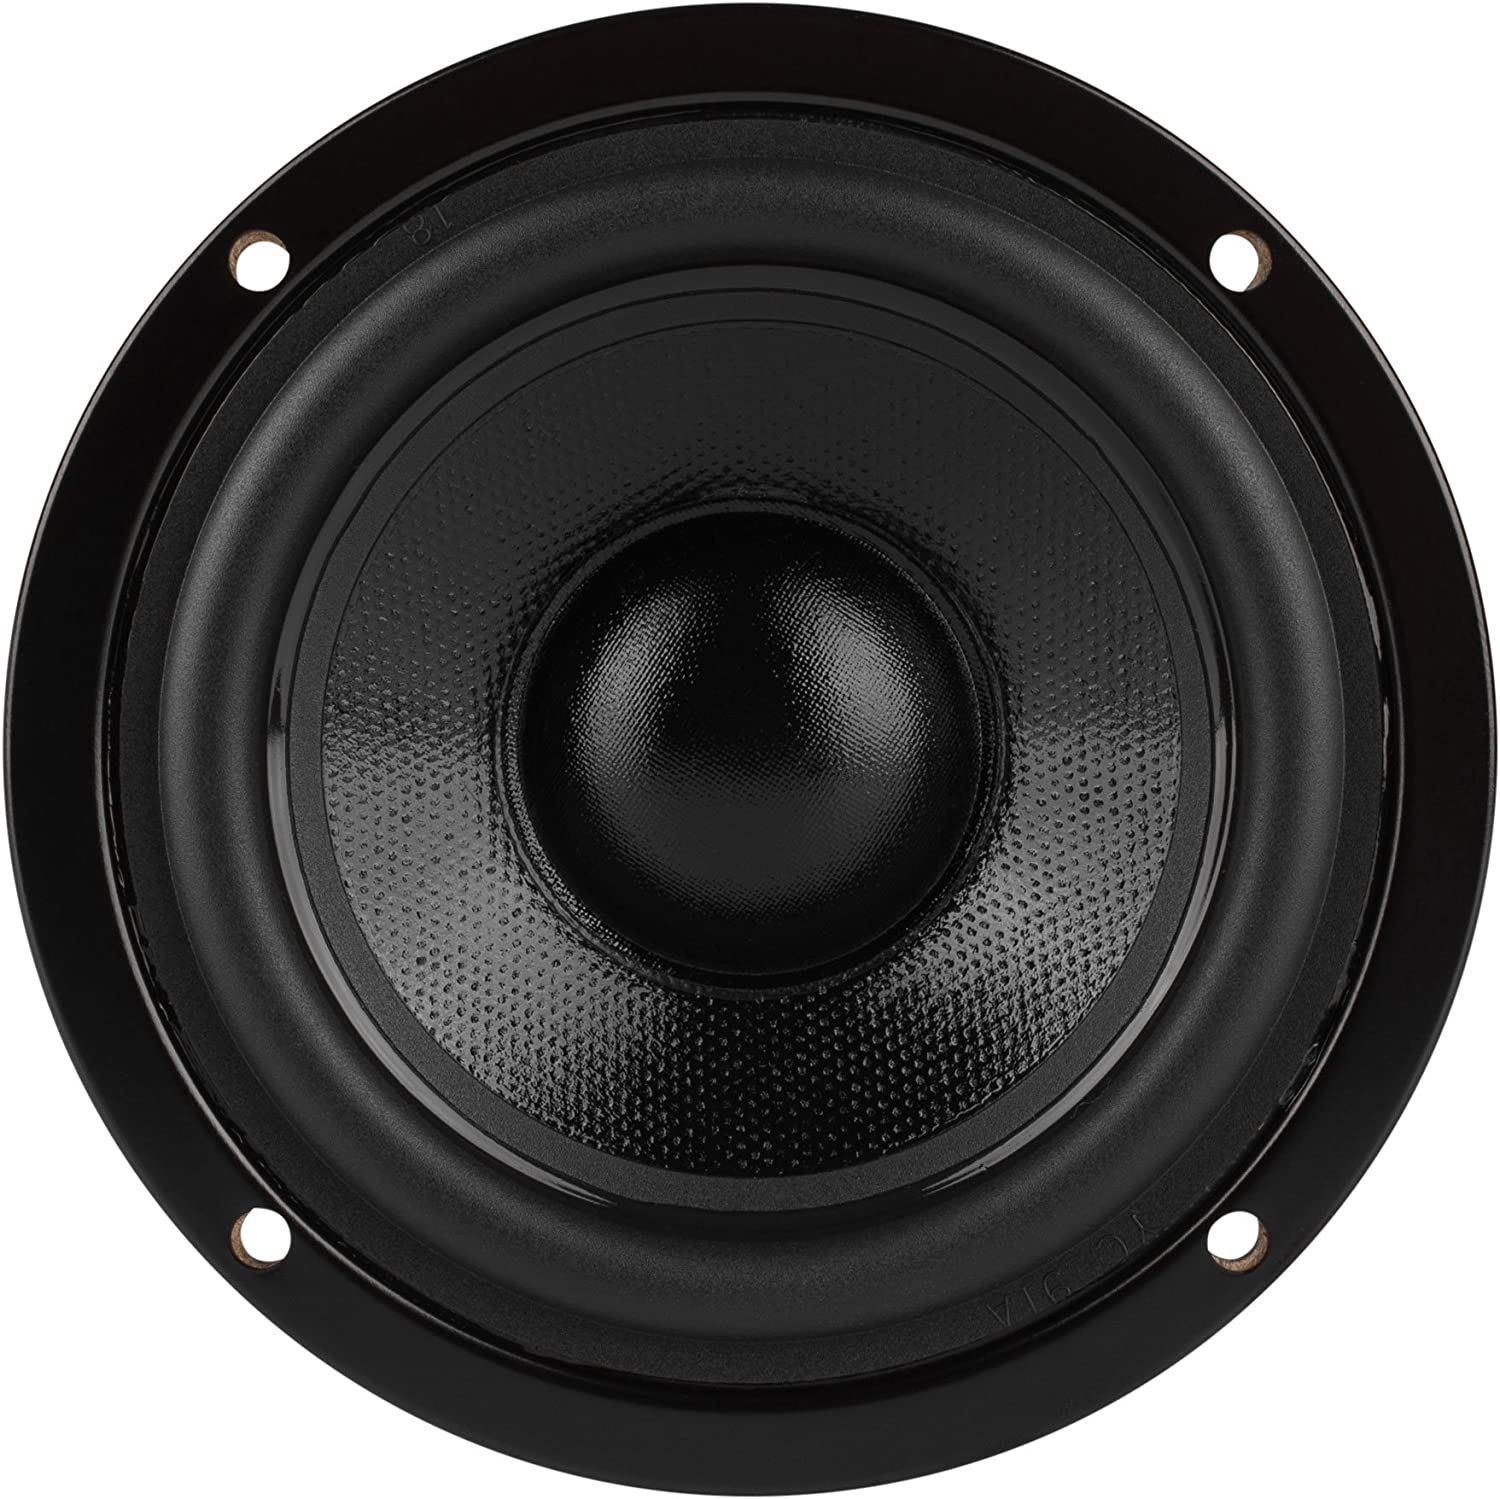 Dayton Audio DS115-8 4 Designer Series Woofer Speaker